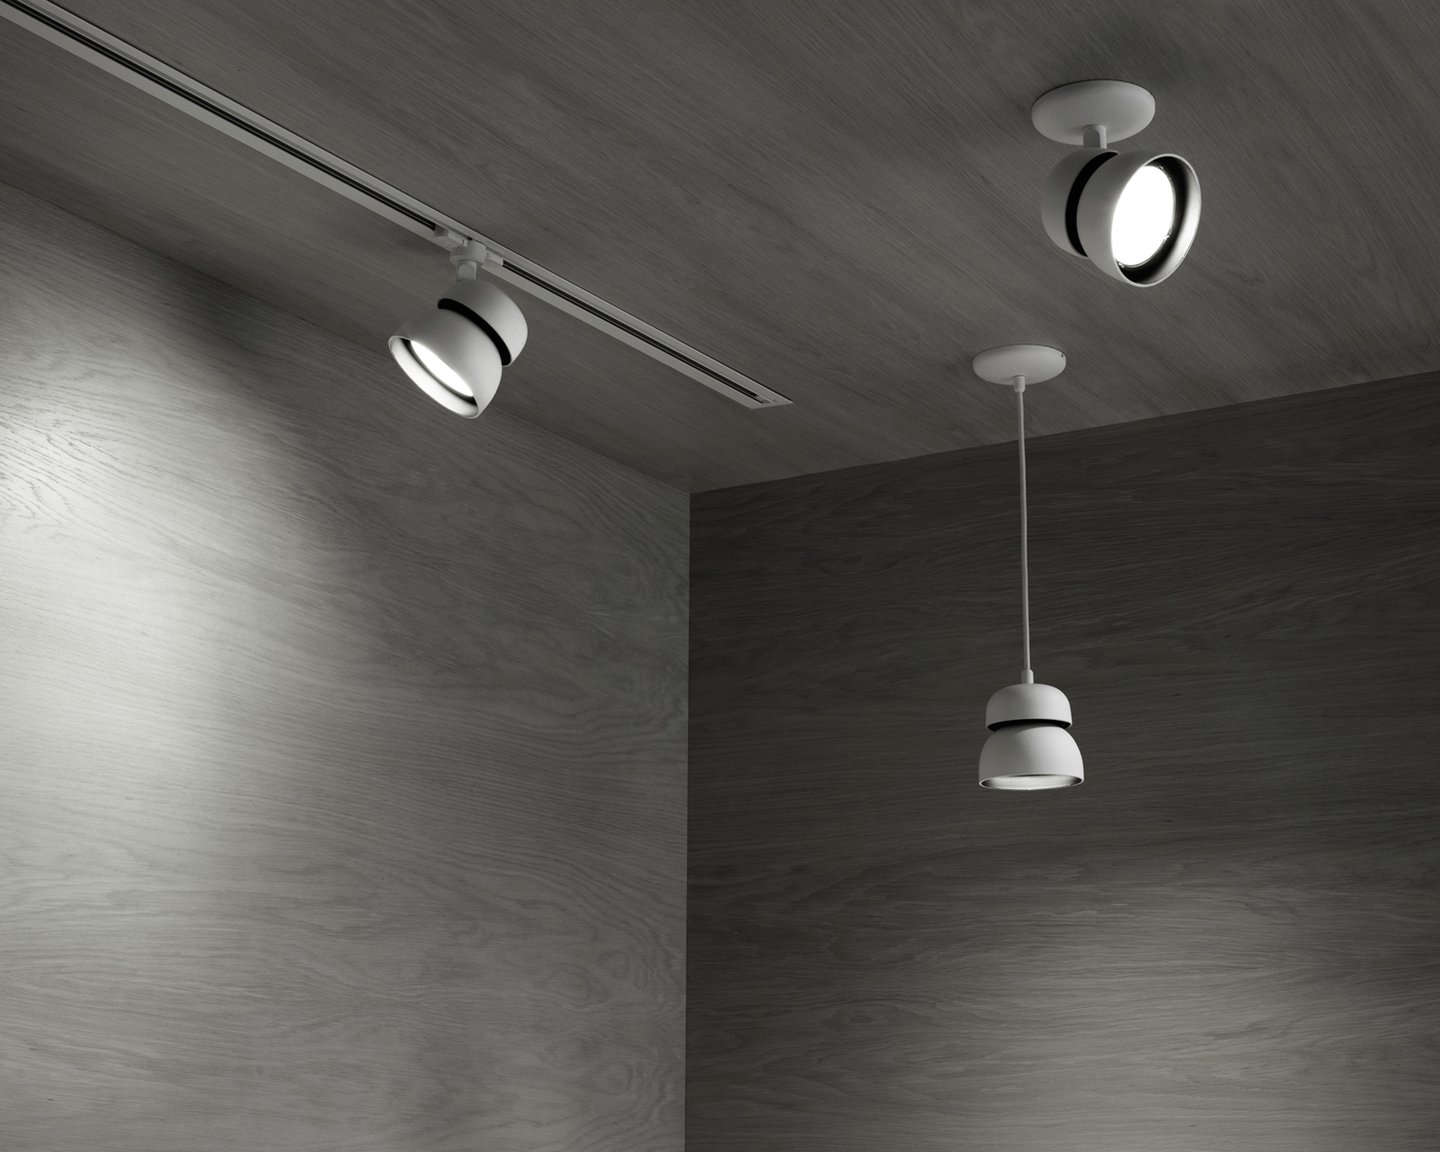 Image: uploads/2017_05/Resident-Echo-Light-by-Flynn-Talbot-2.jpg